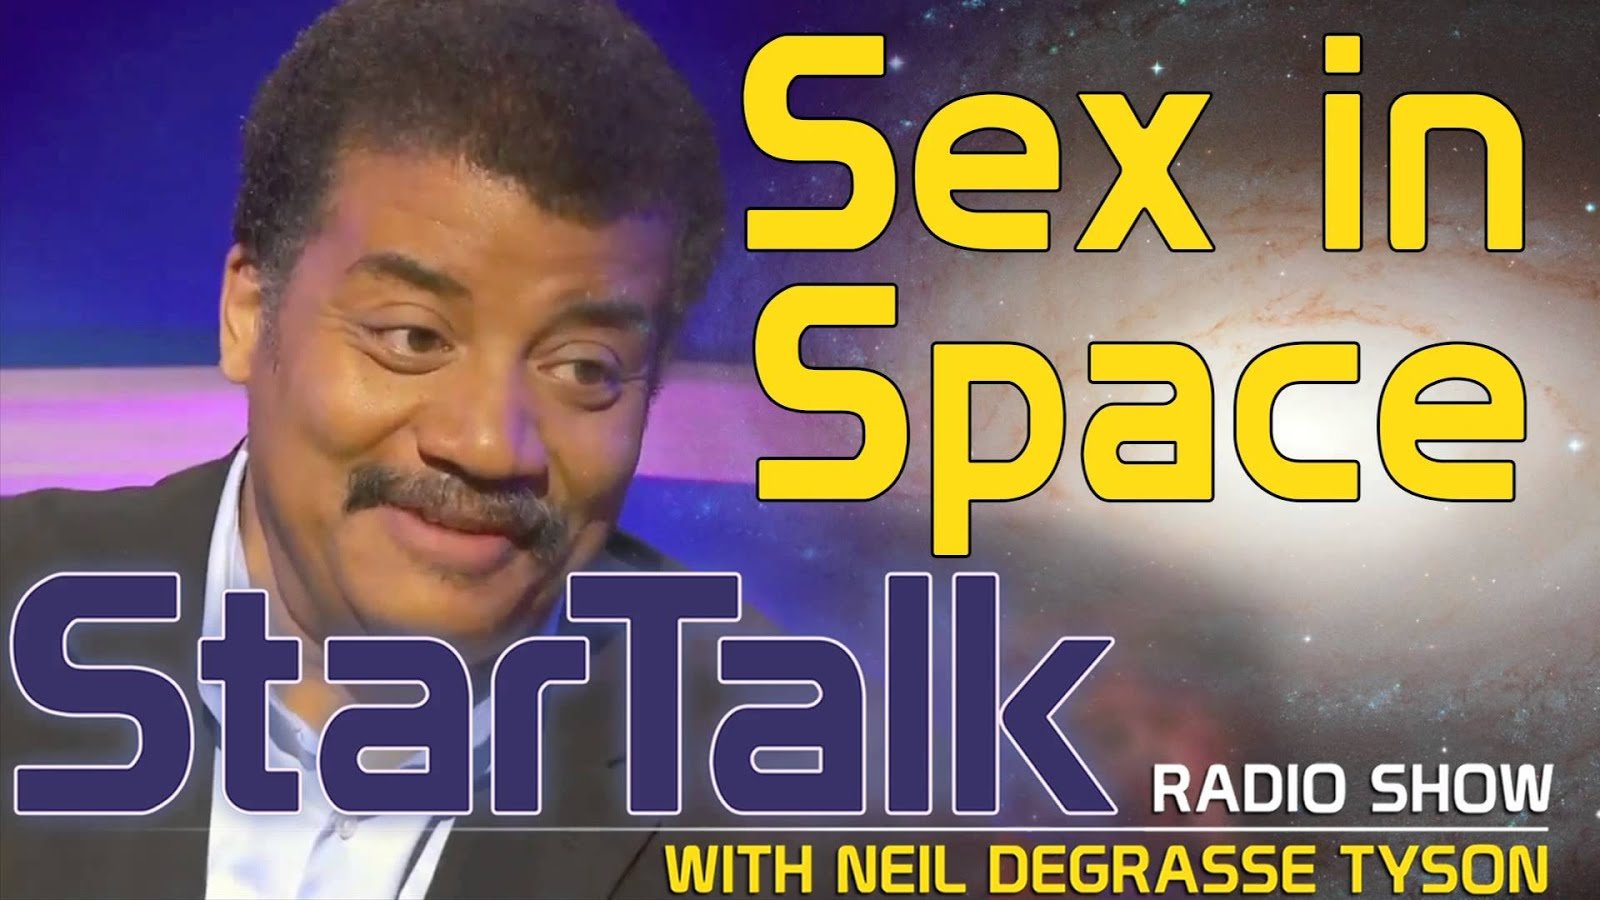 Sex in space sex with robots